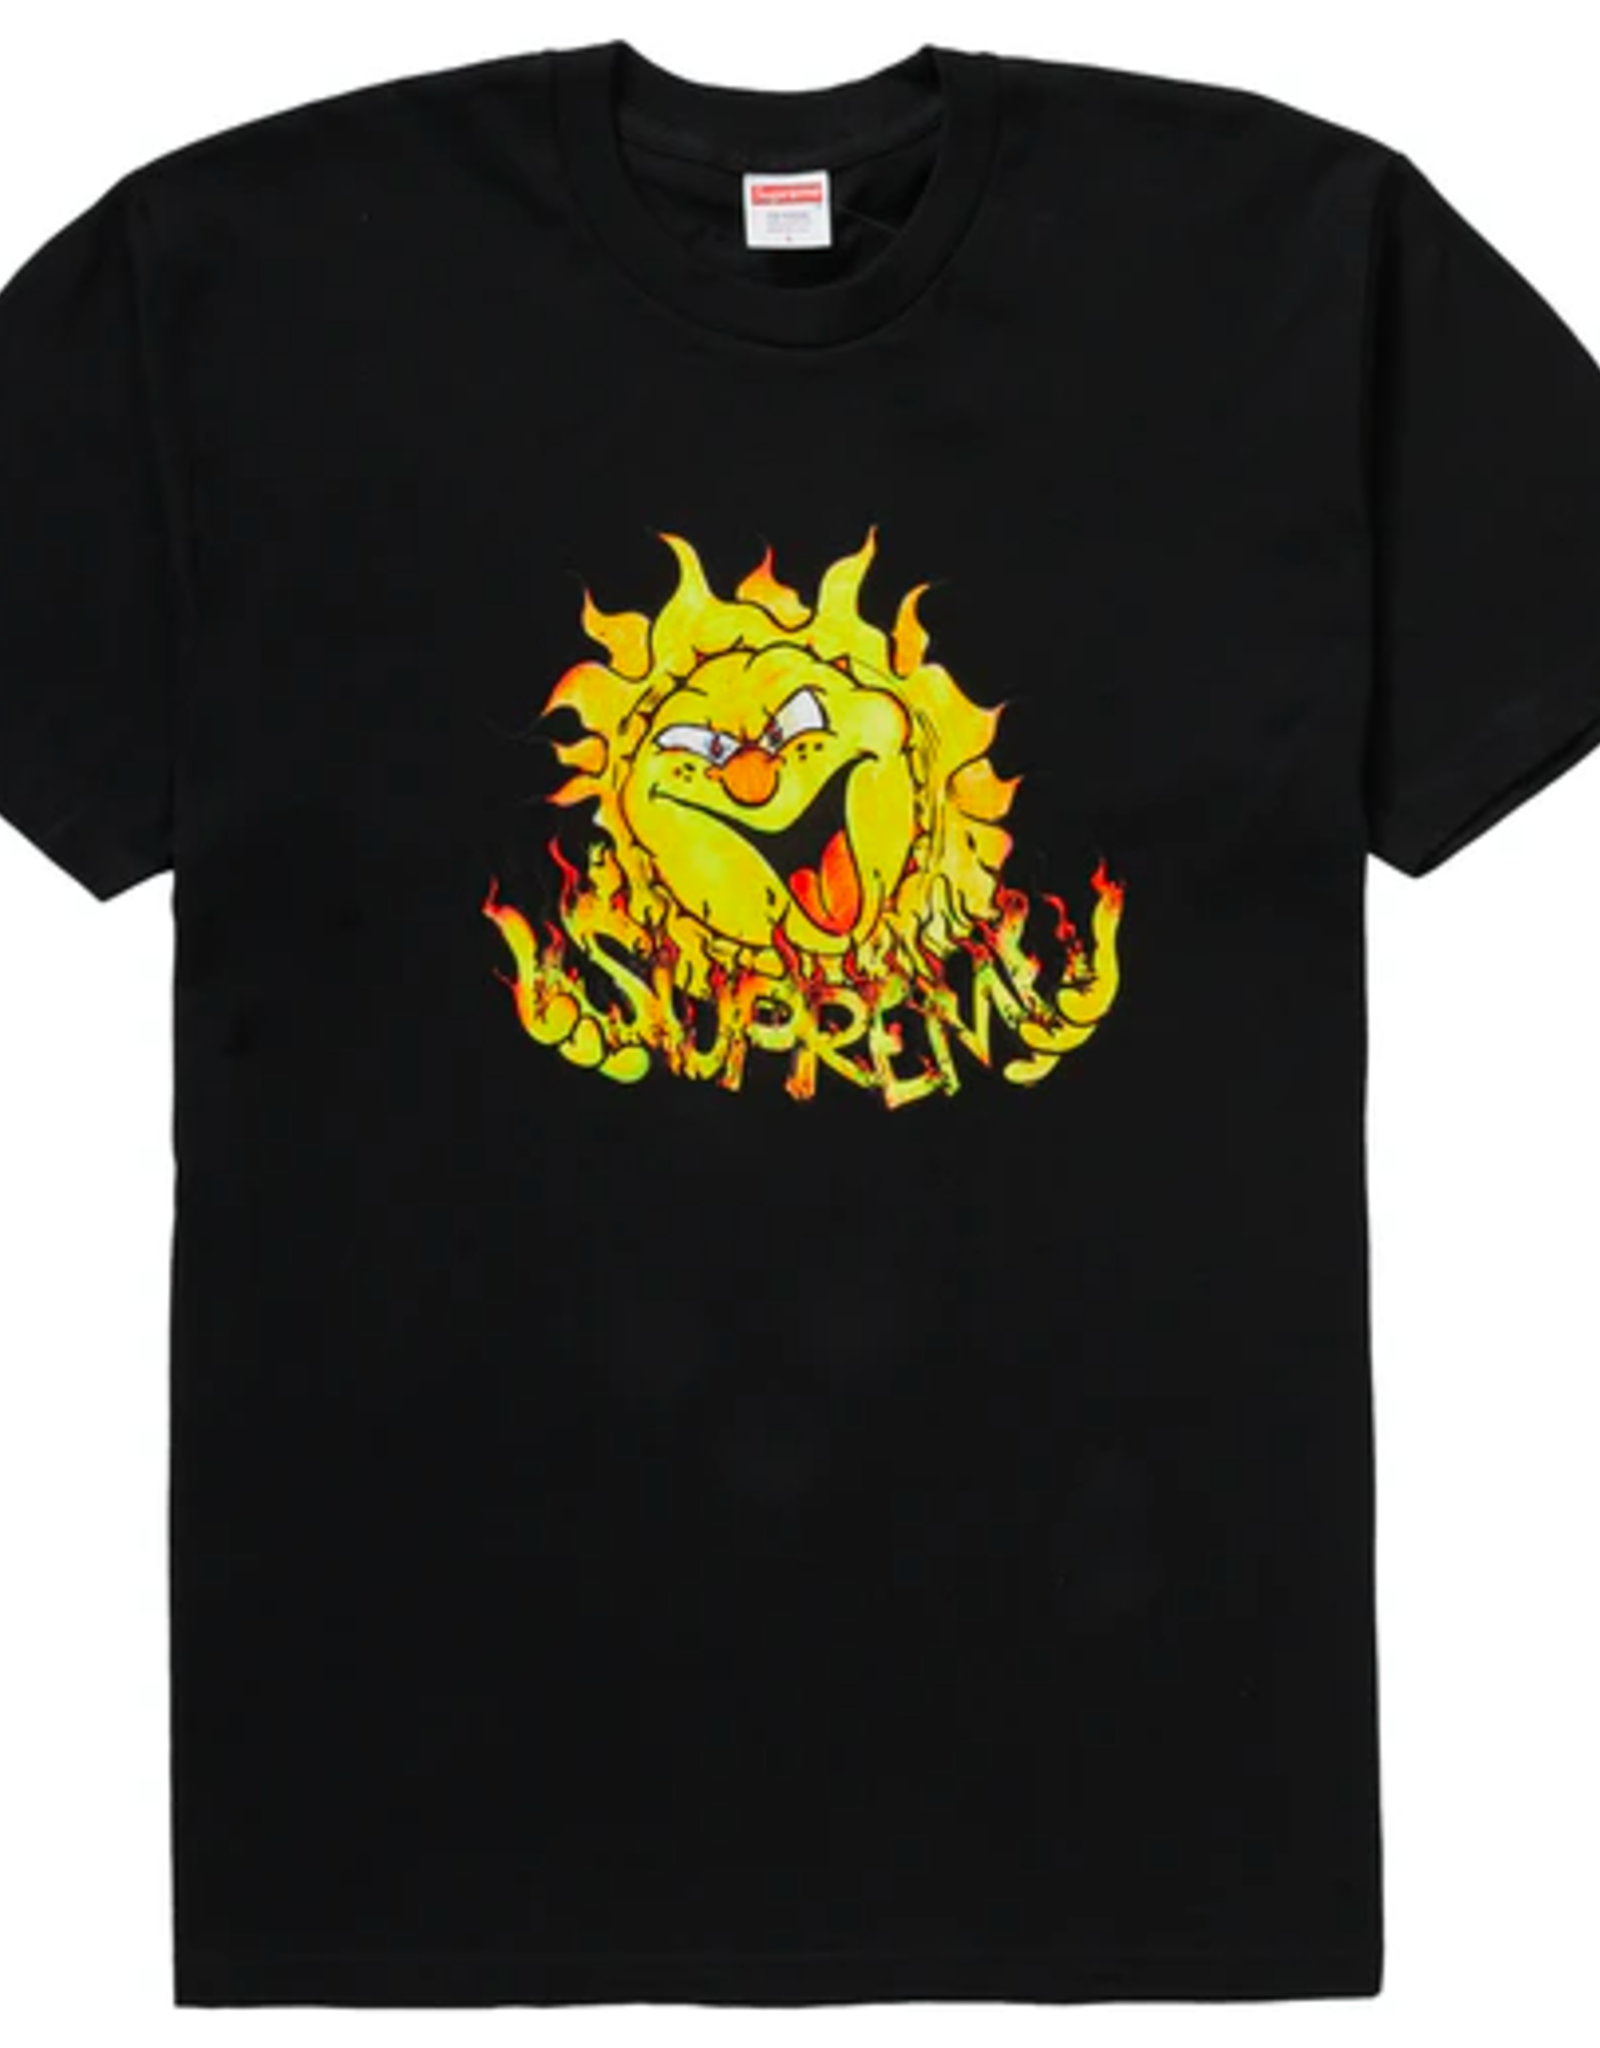 SUPREME Supreme Sun Tee Black - Medium